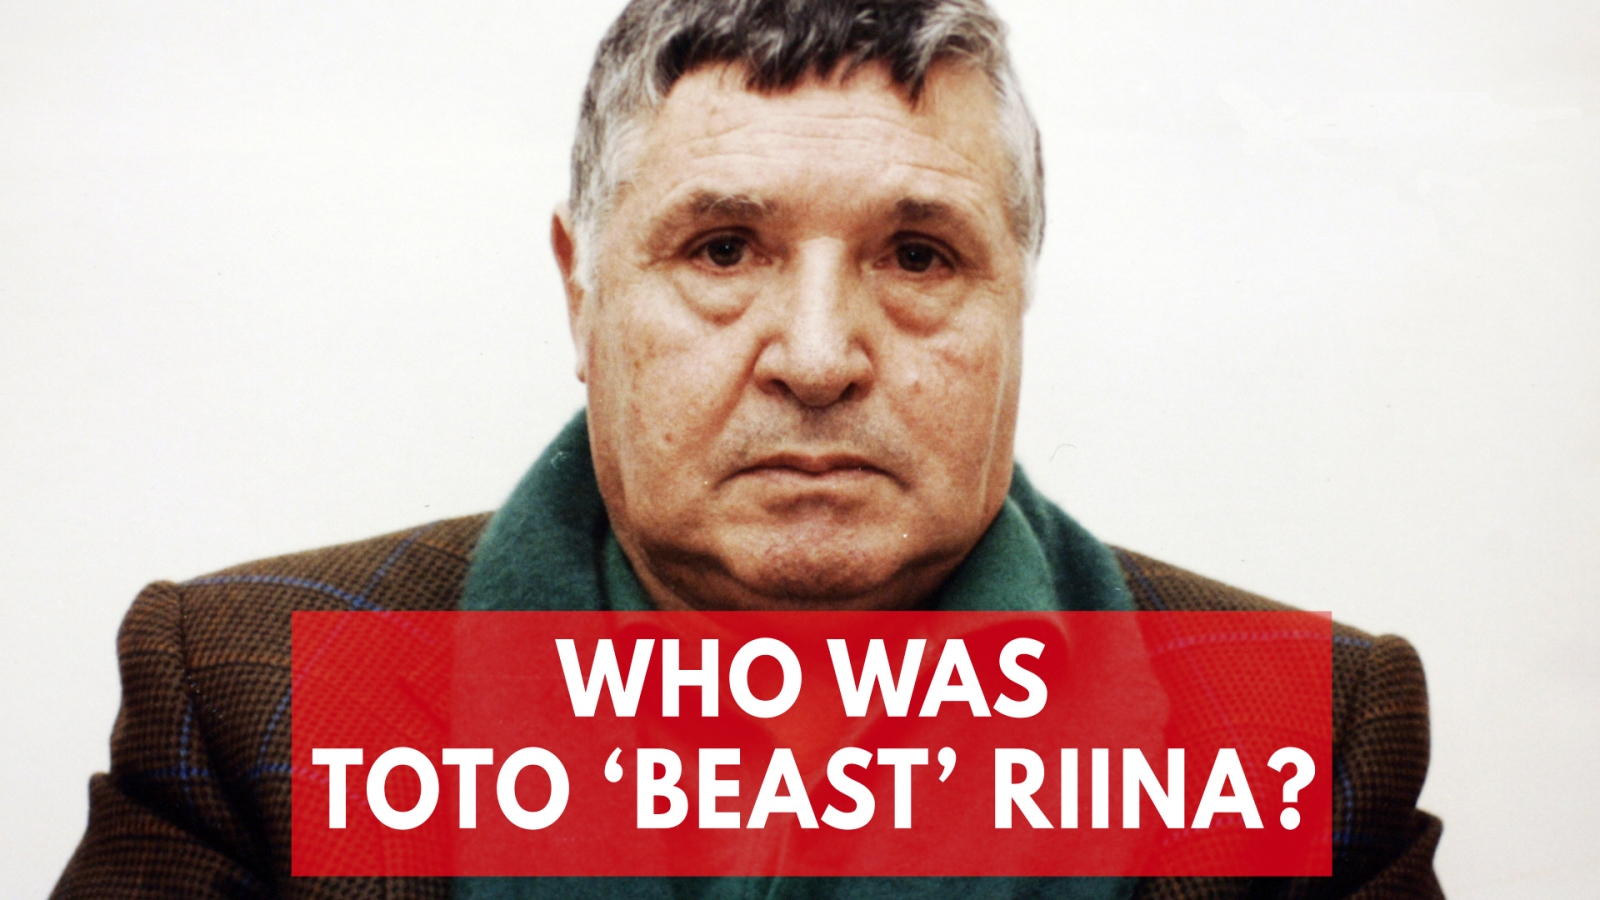 who-was-toto-beast-riina-italy-mafia-boss-of-bosses-dies-at-87